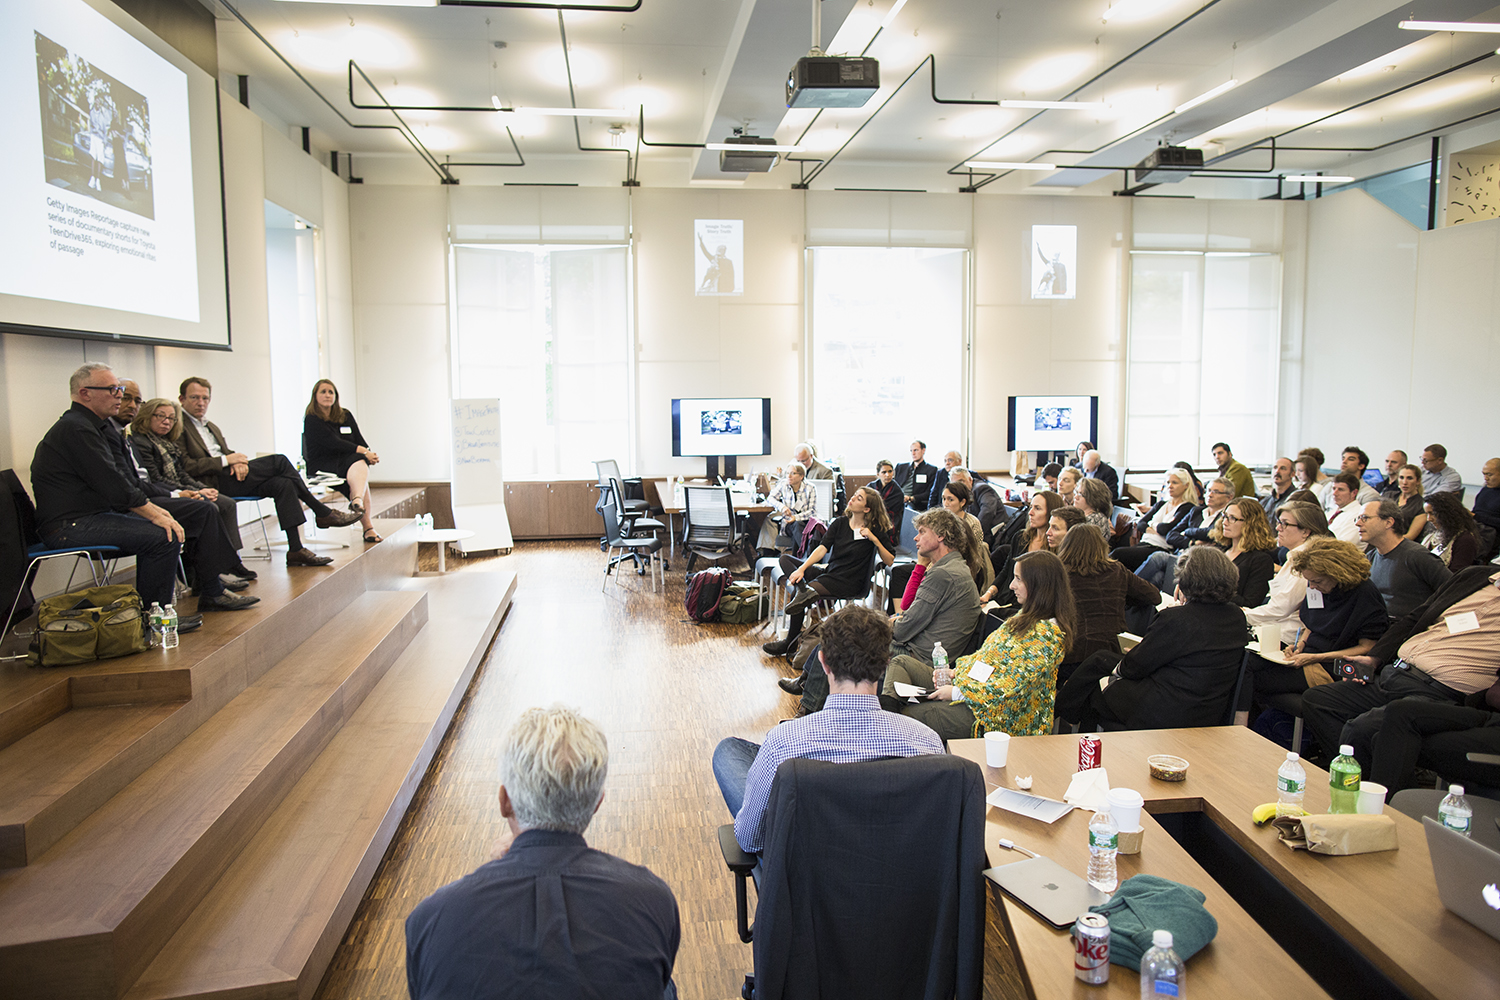 Image Truth/Story Truth  conference, Columbia Journalism School, NY, NY, October 16, 2015